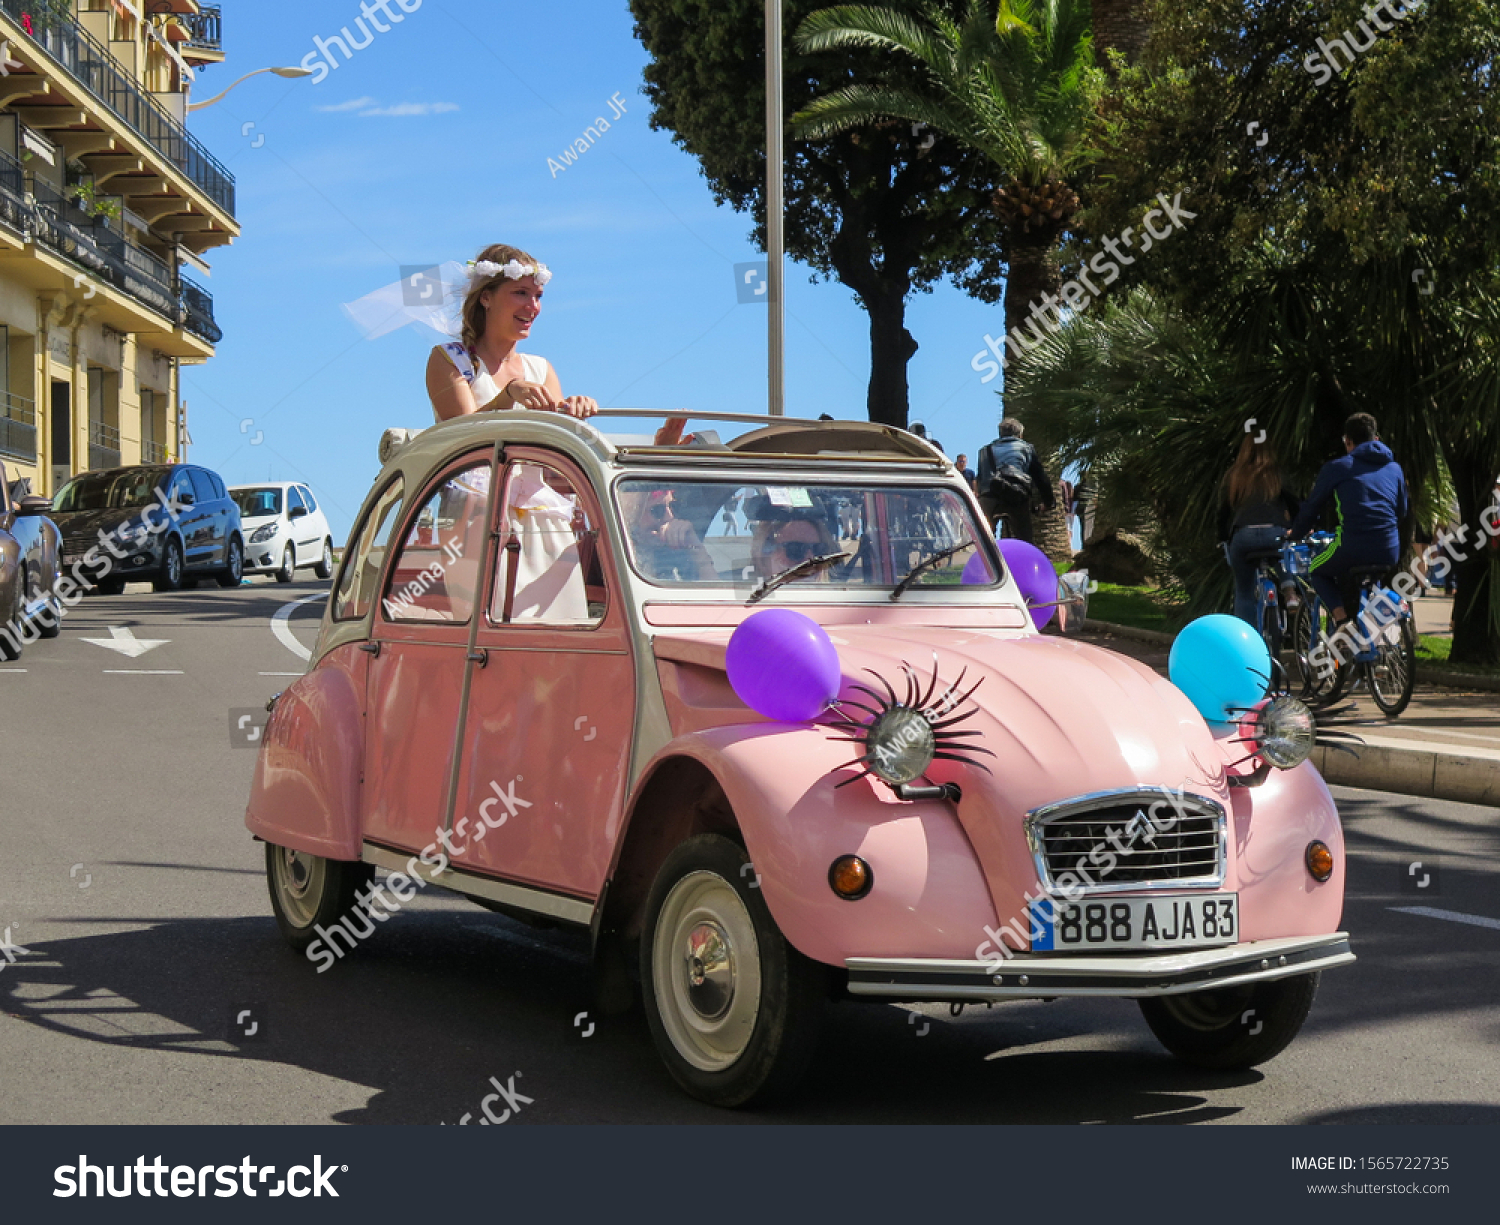 Nice, France - Mai 2017: Wedding bride ridding a pink old vintage car on a sunny day in the south of France